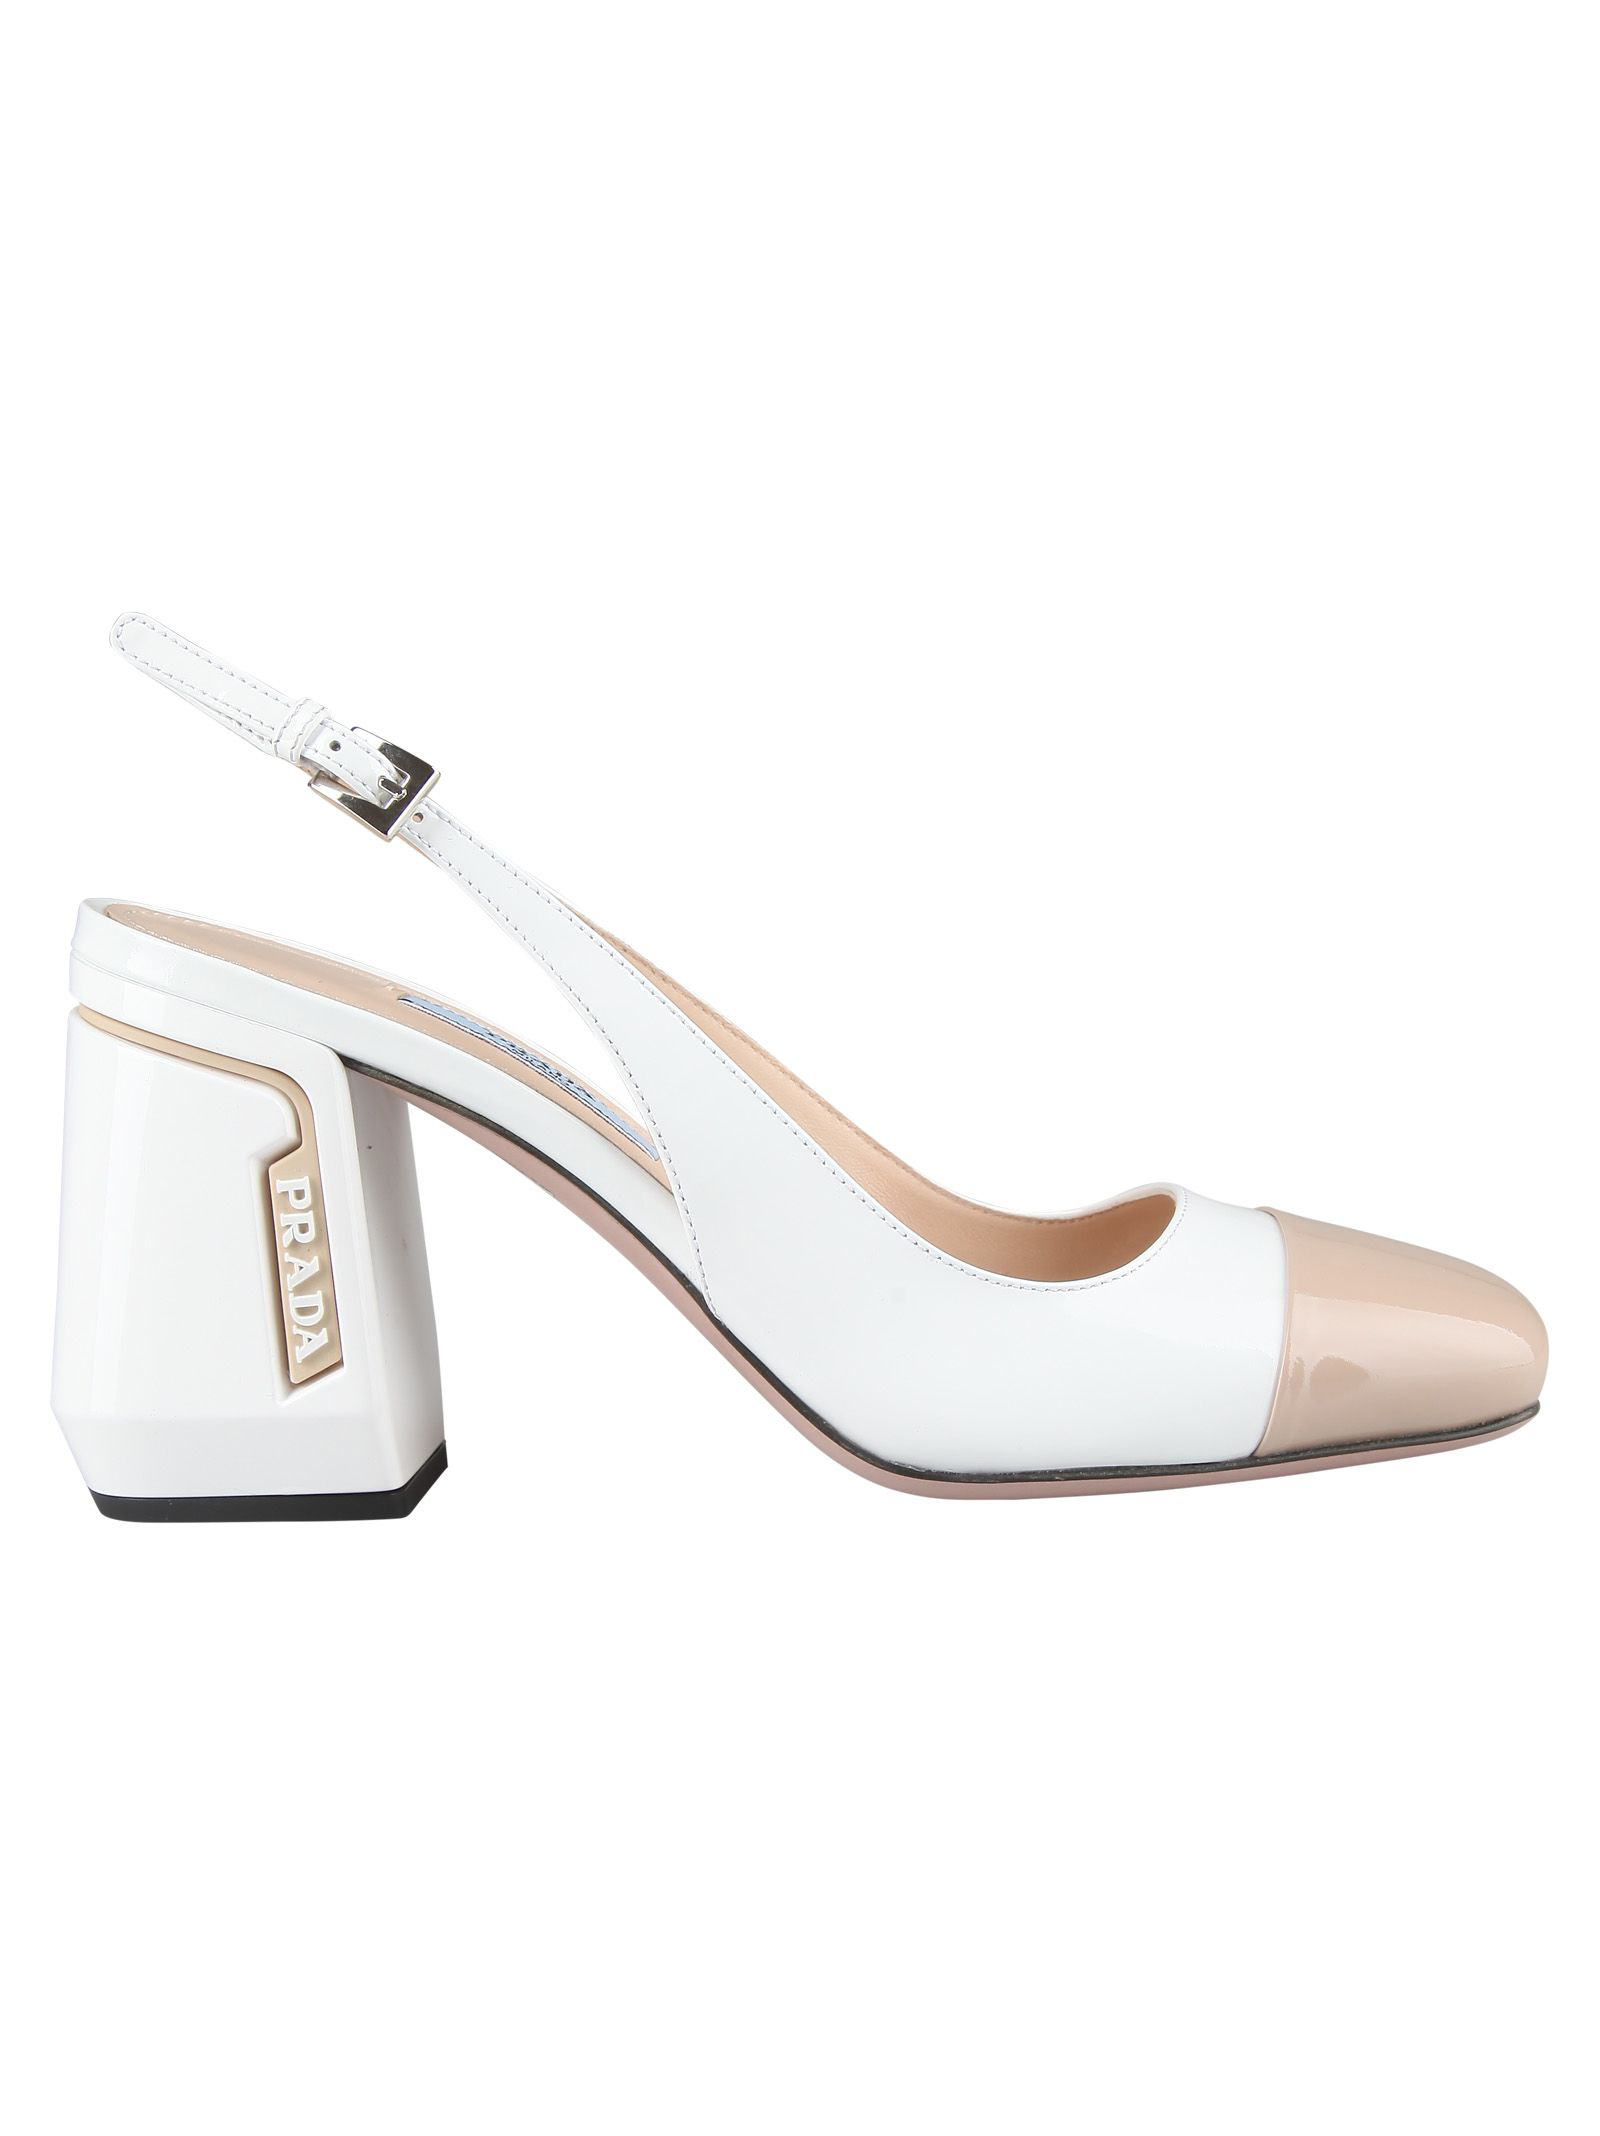 c3f58c04c Prada 85 Two-Tone Smooth And Patent-Leather Slingback Pumps In White ...